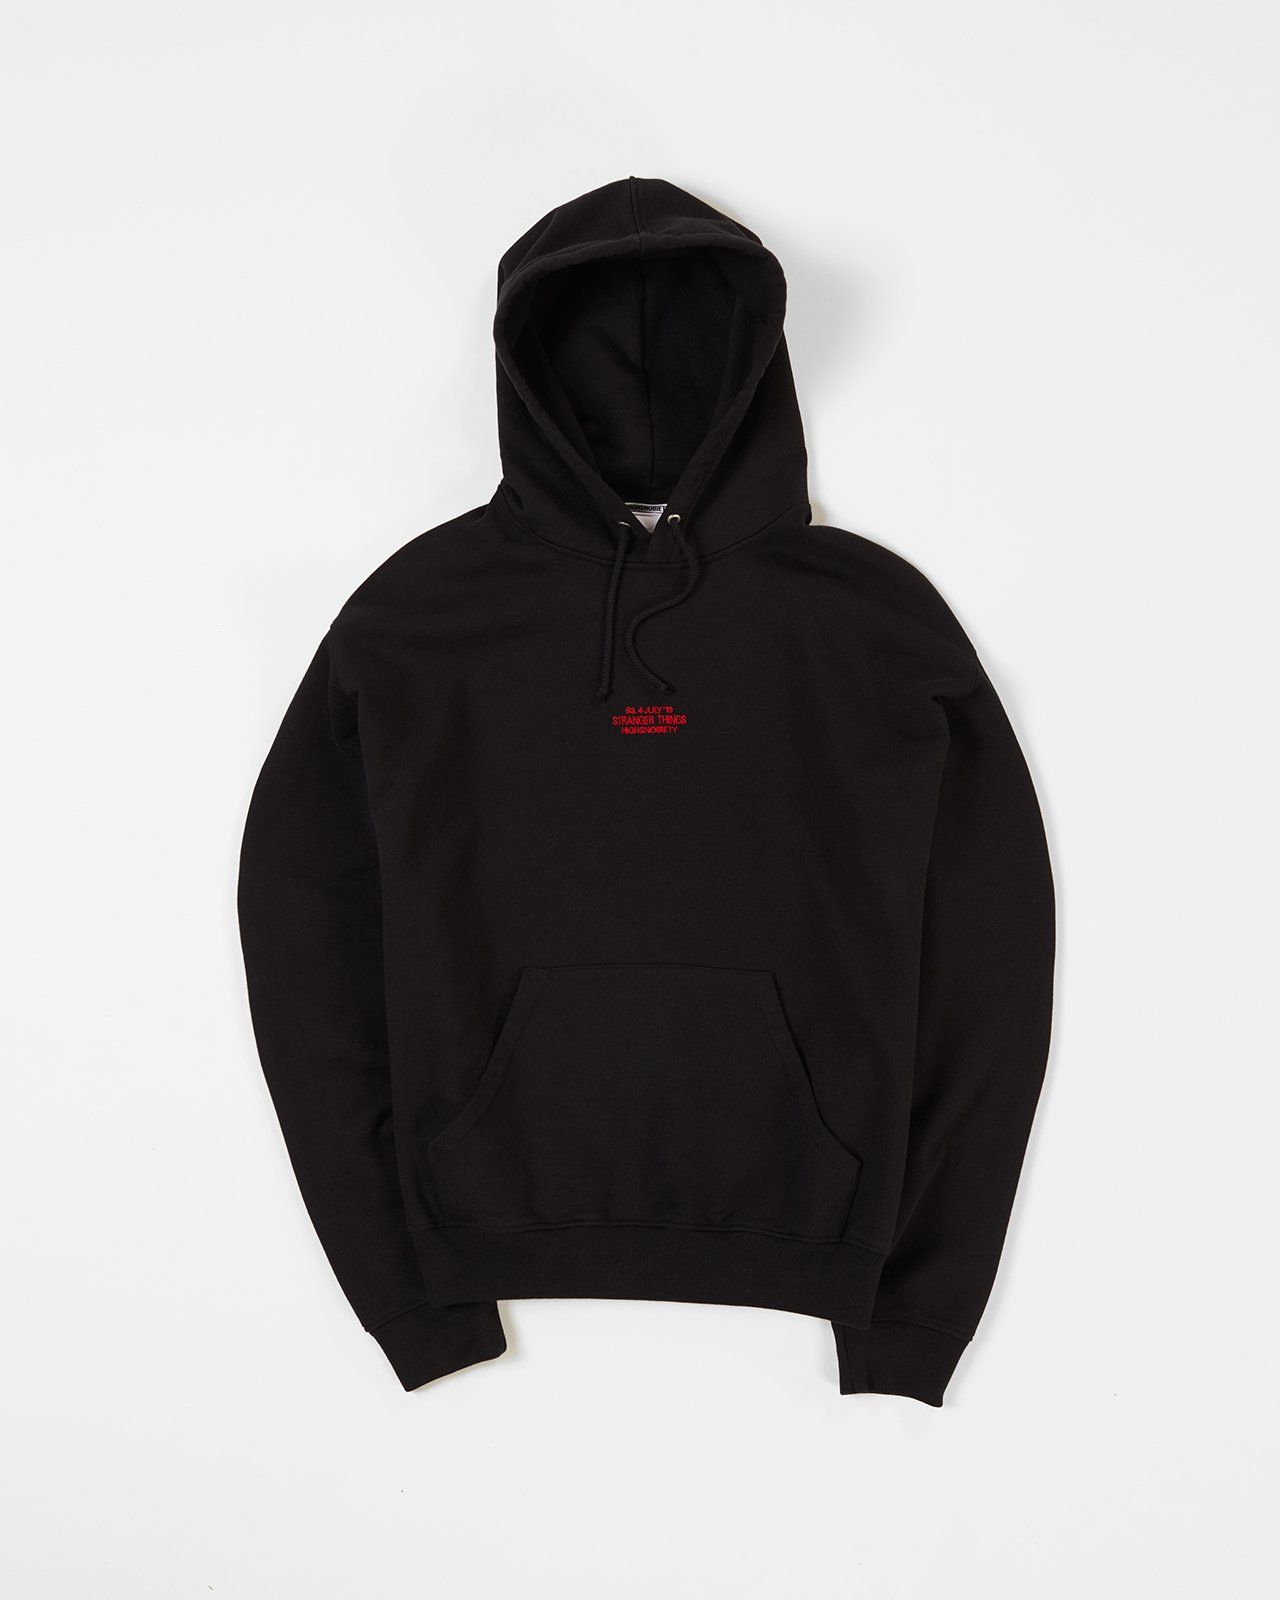 Stranger Things 3 x Highsnobiety Logo Hoodie - Black - Image 2